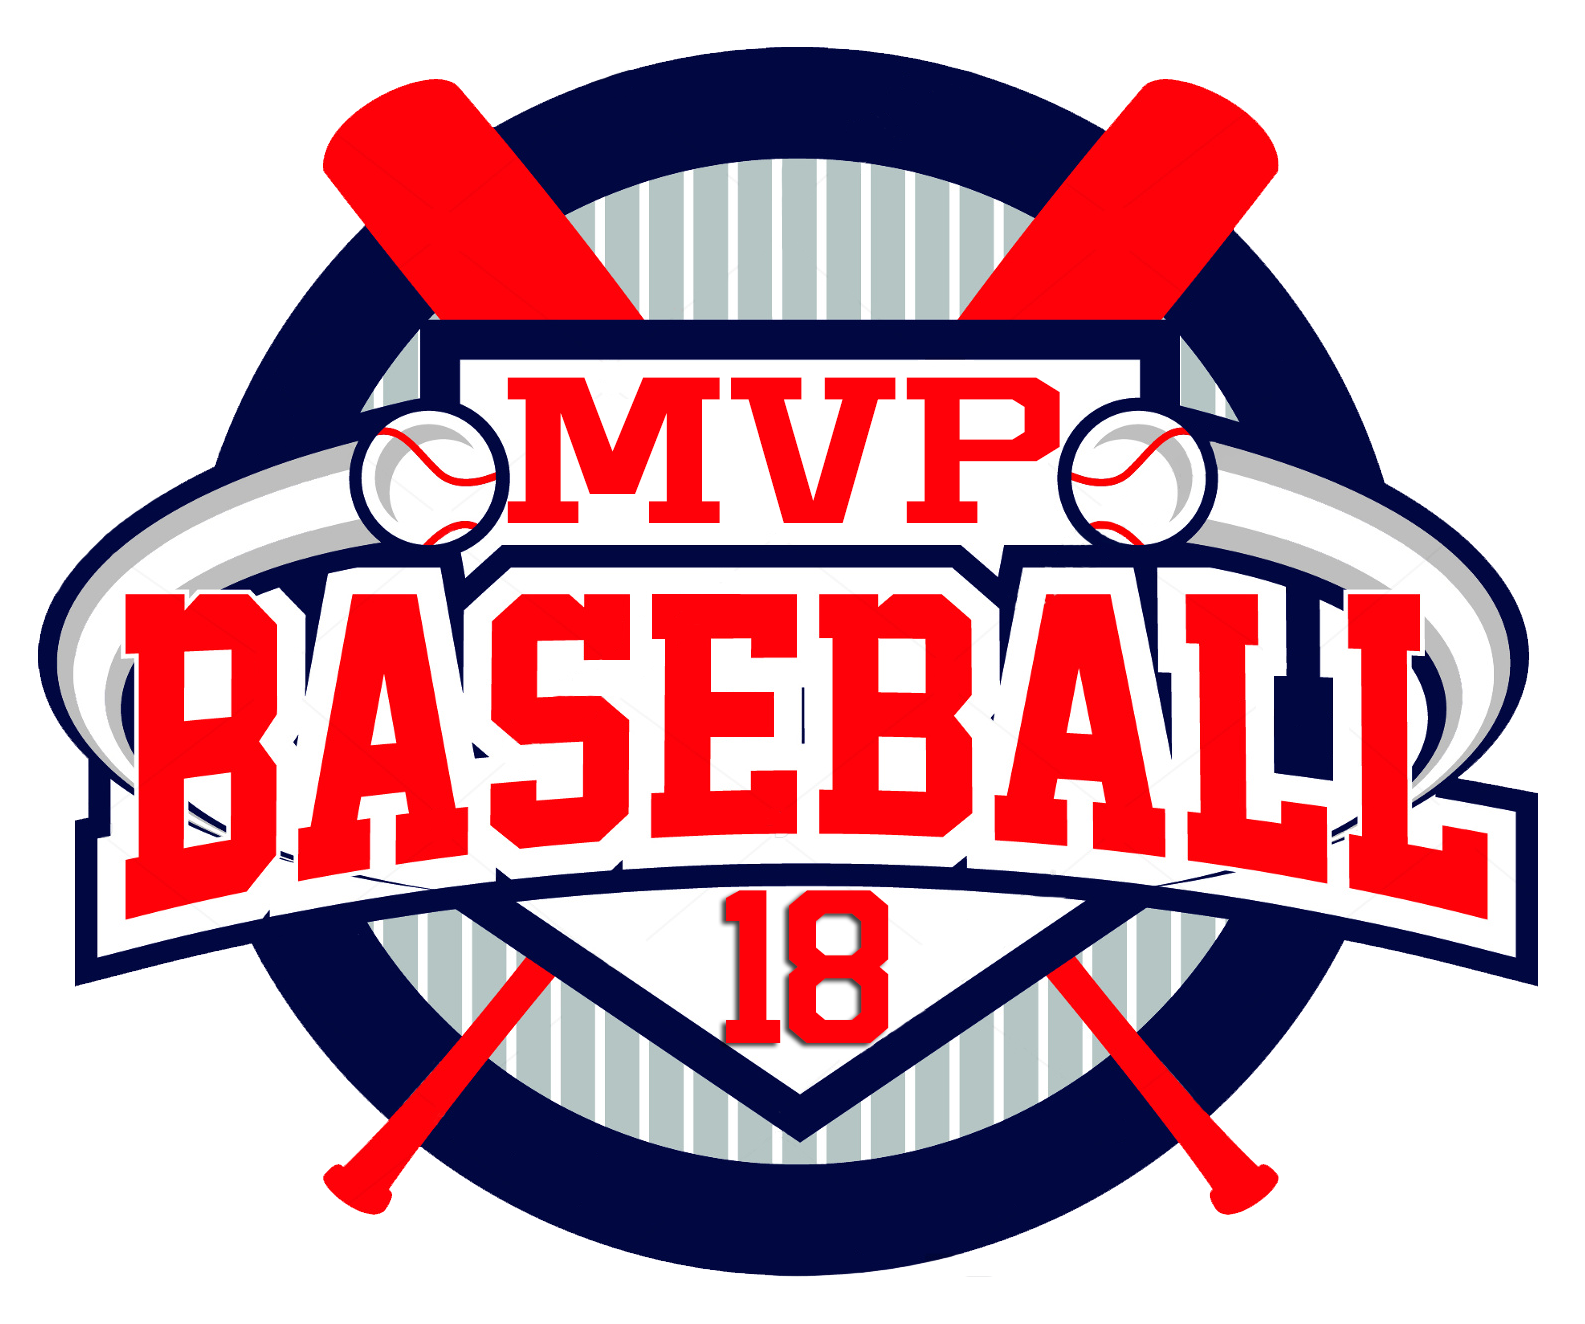 Mvp baseball total conversion. Youtube clipart league